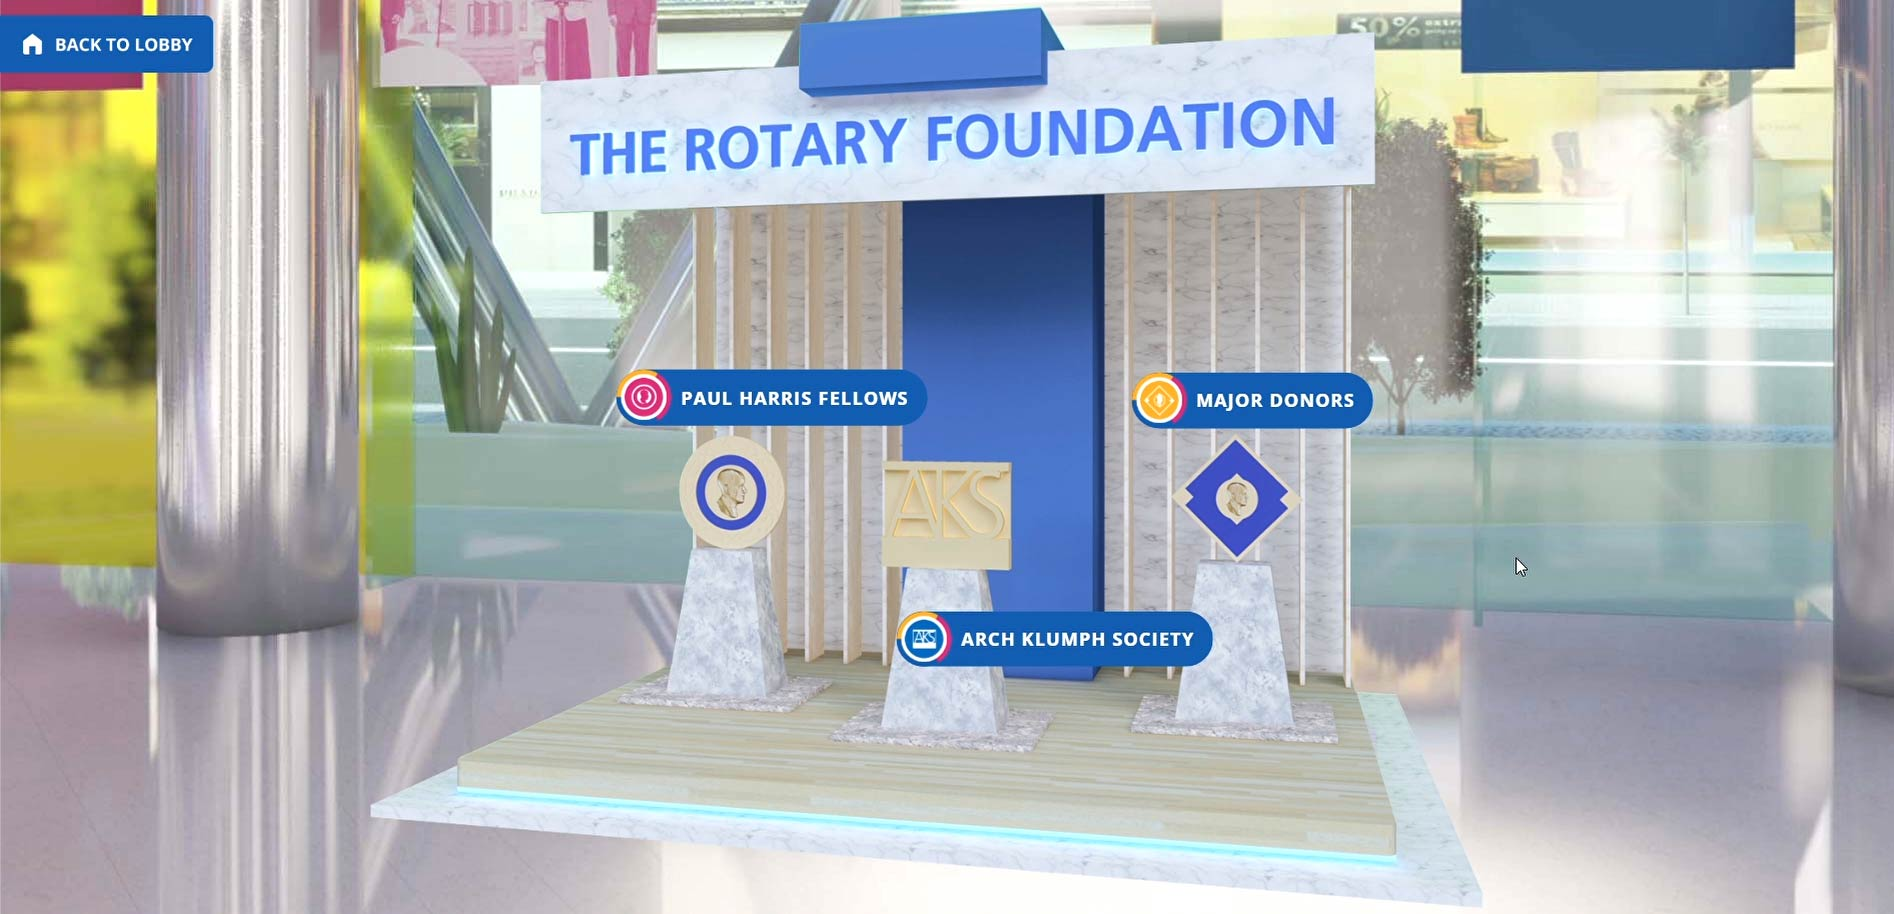 TRF Gallery of The Rotary Foundation's Paul Harris Fellows